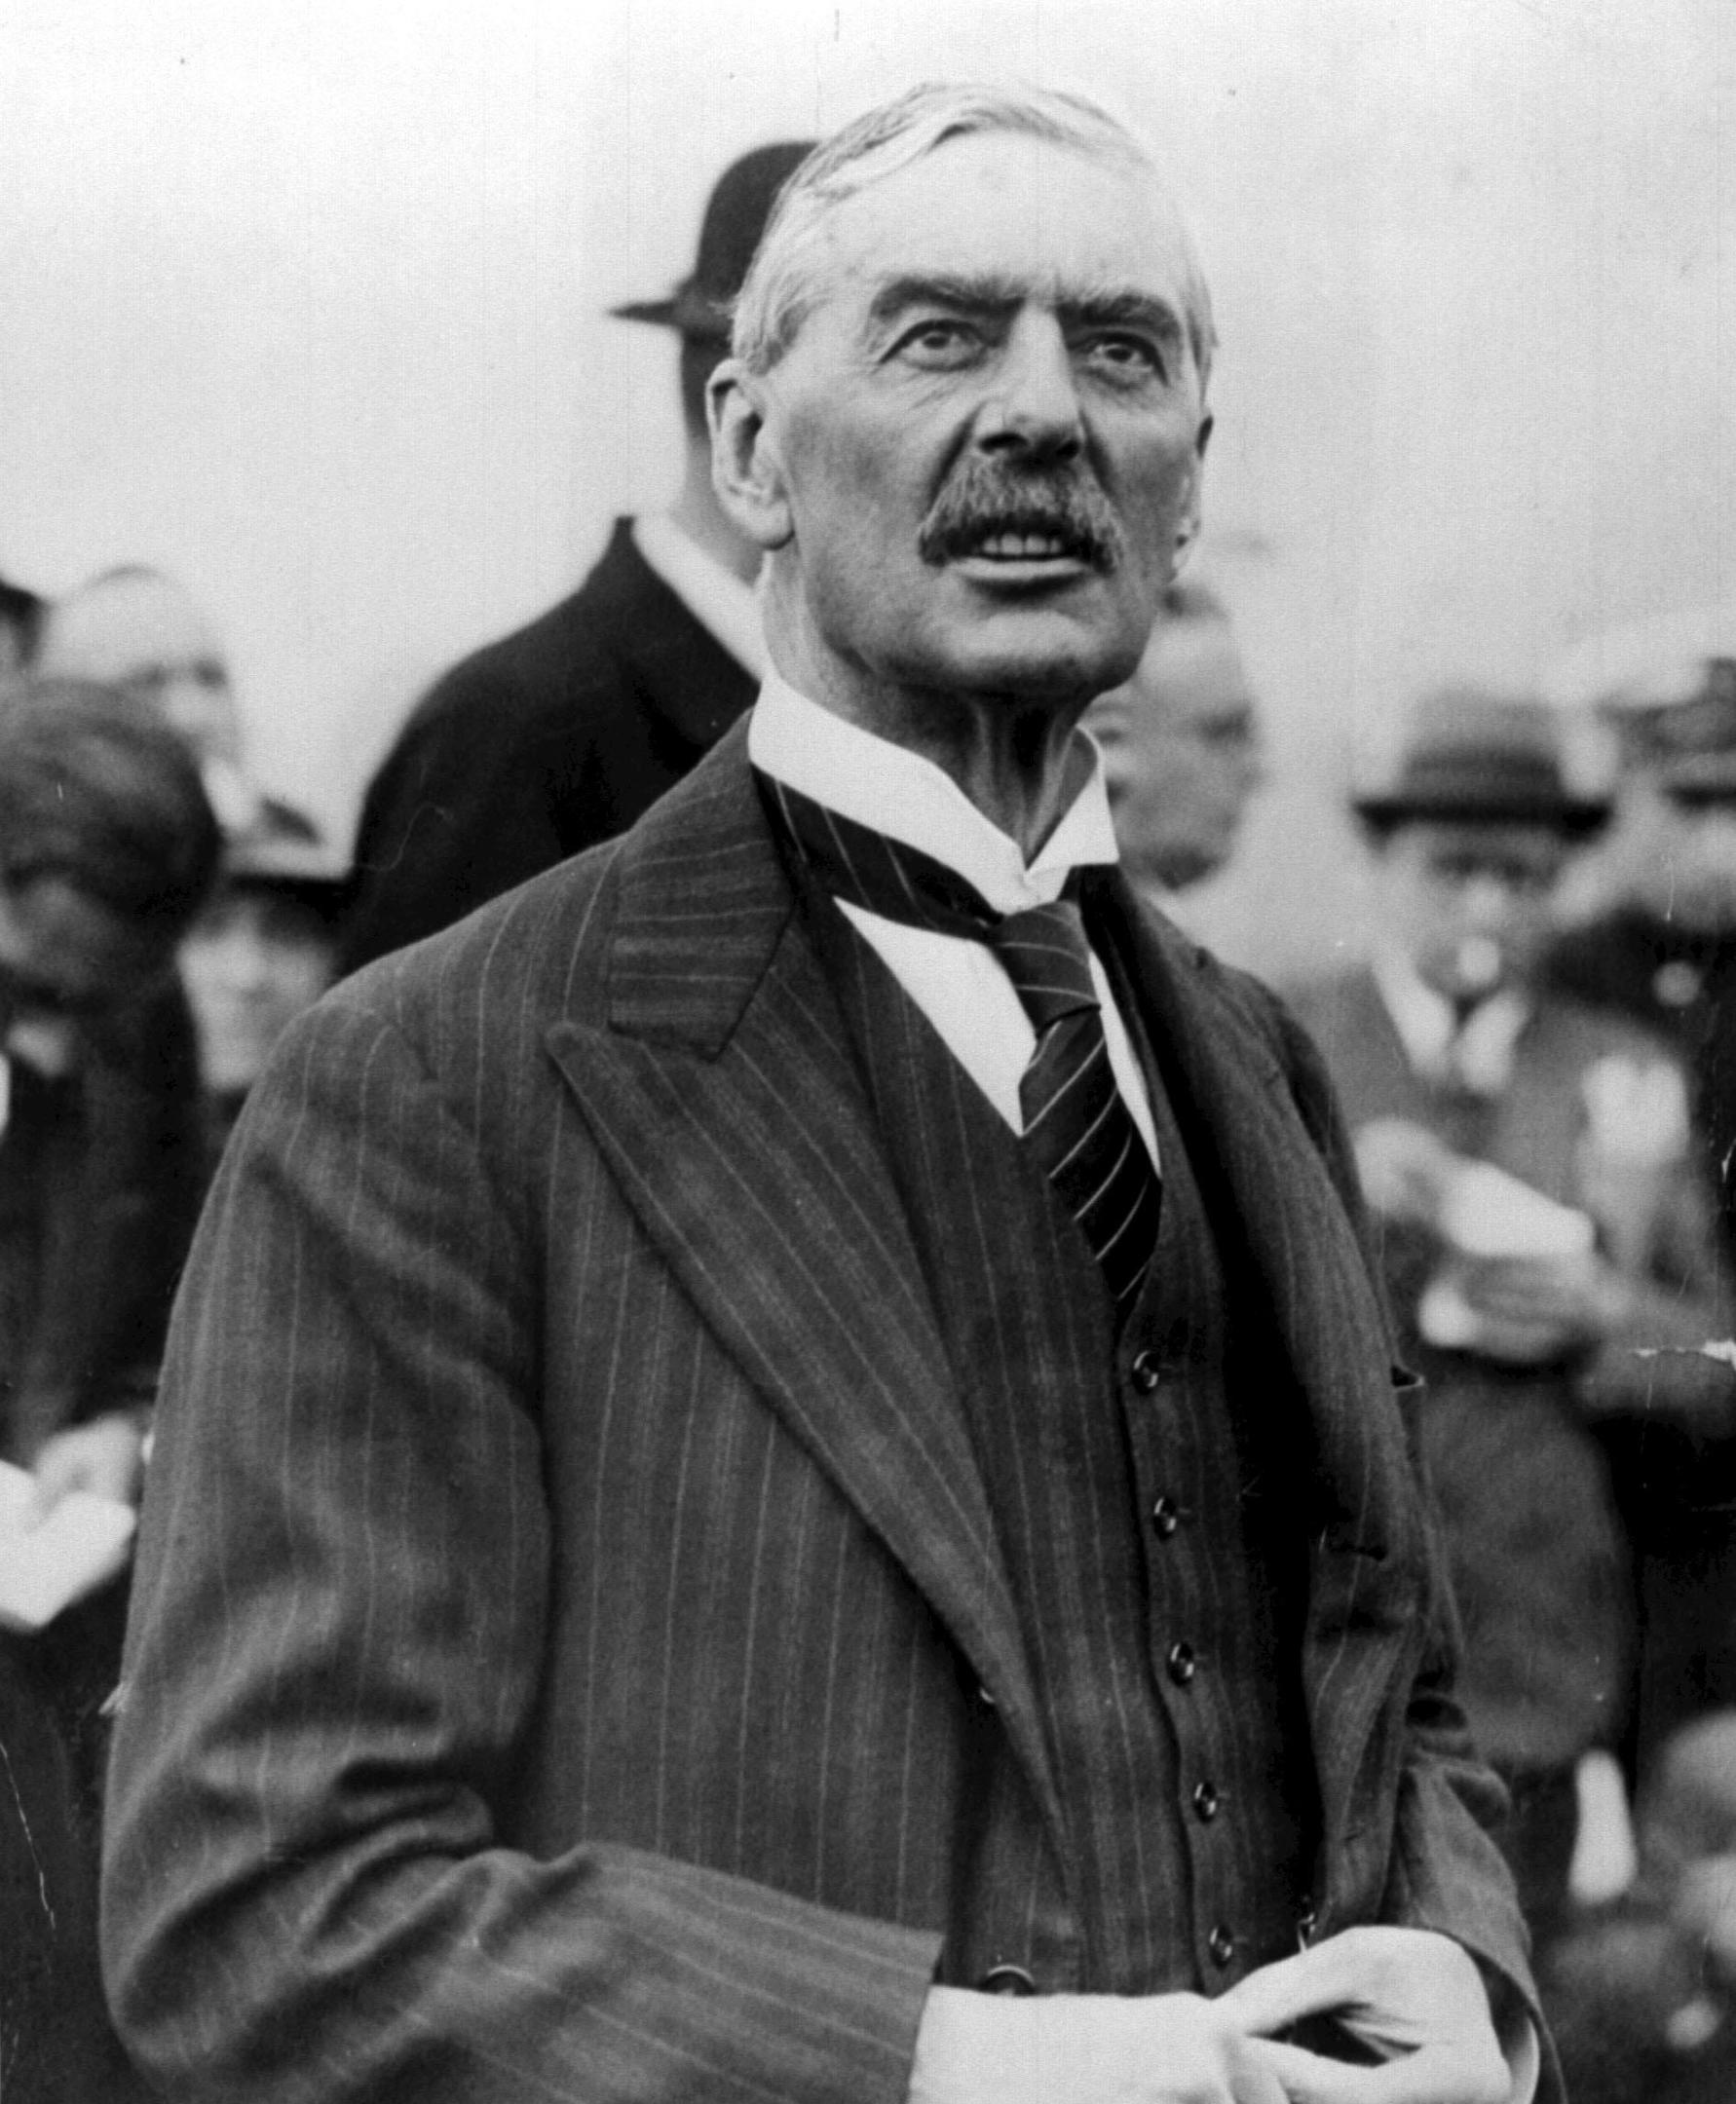 Neville Chamberlain (1869-1940), British Conservative statesman and Prime Minister (1937-1940)